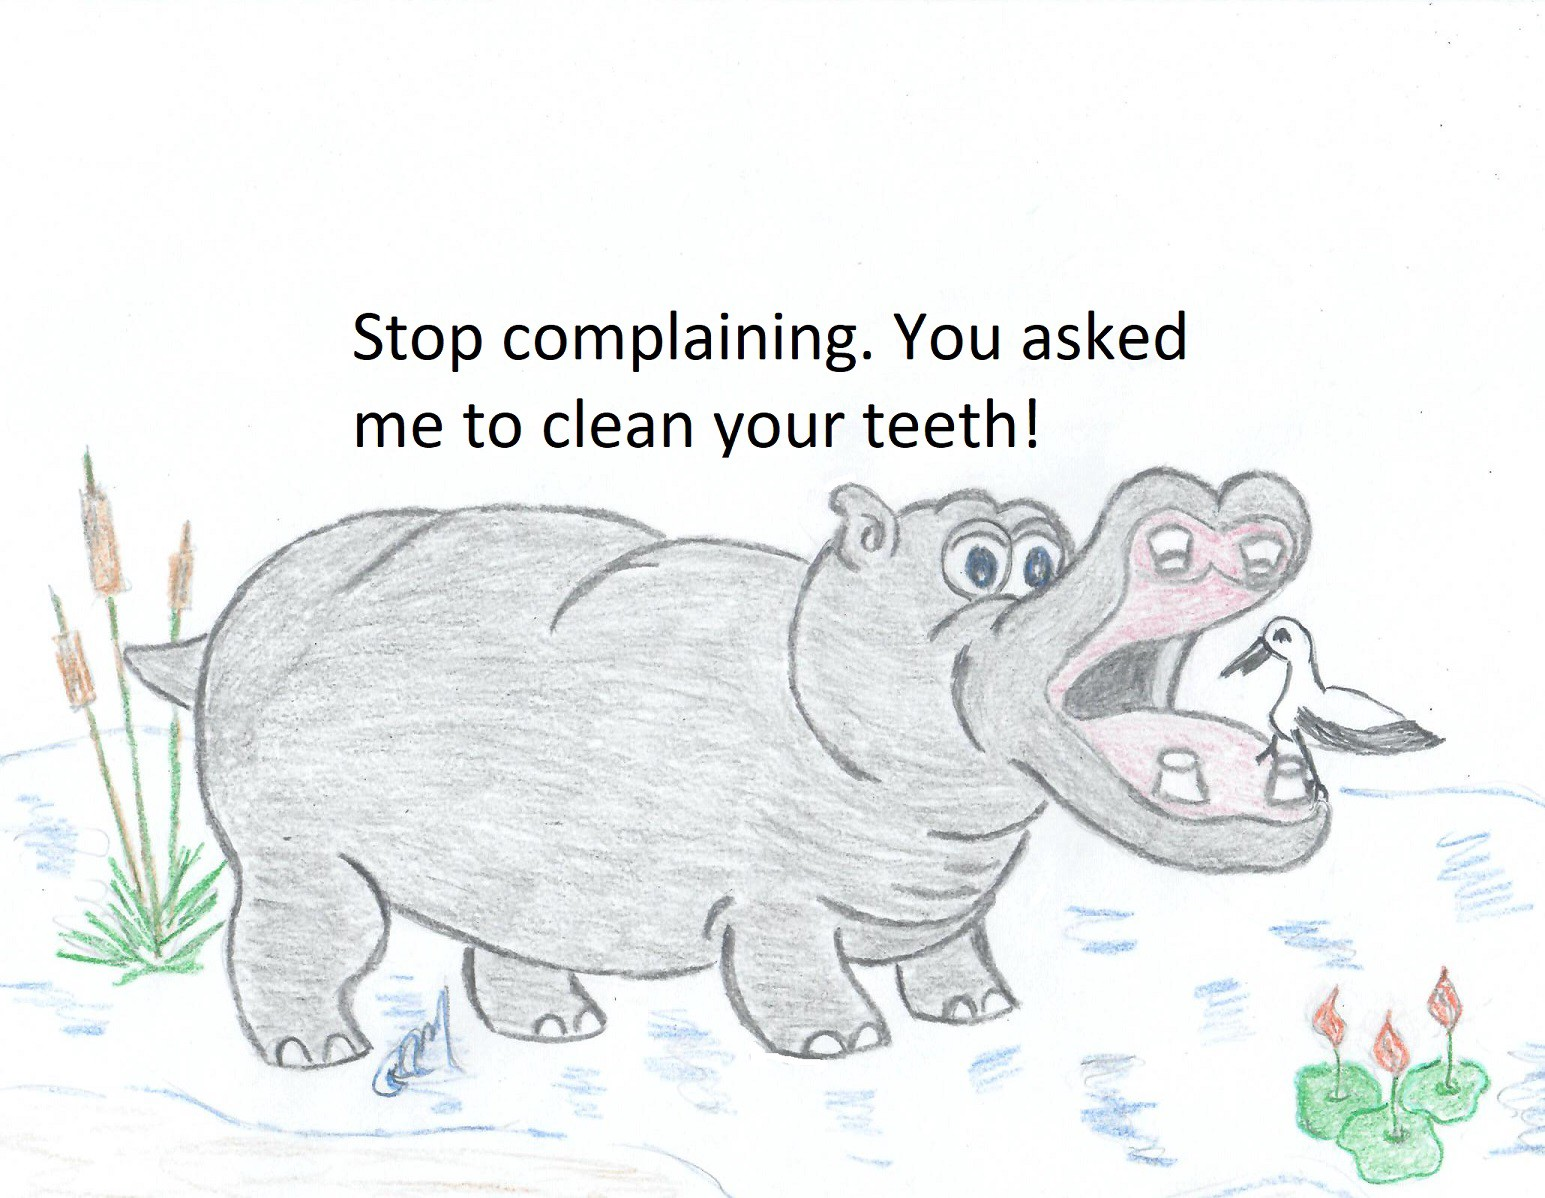 Stop complaining. You asked me to clean your teeth!